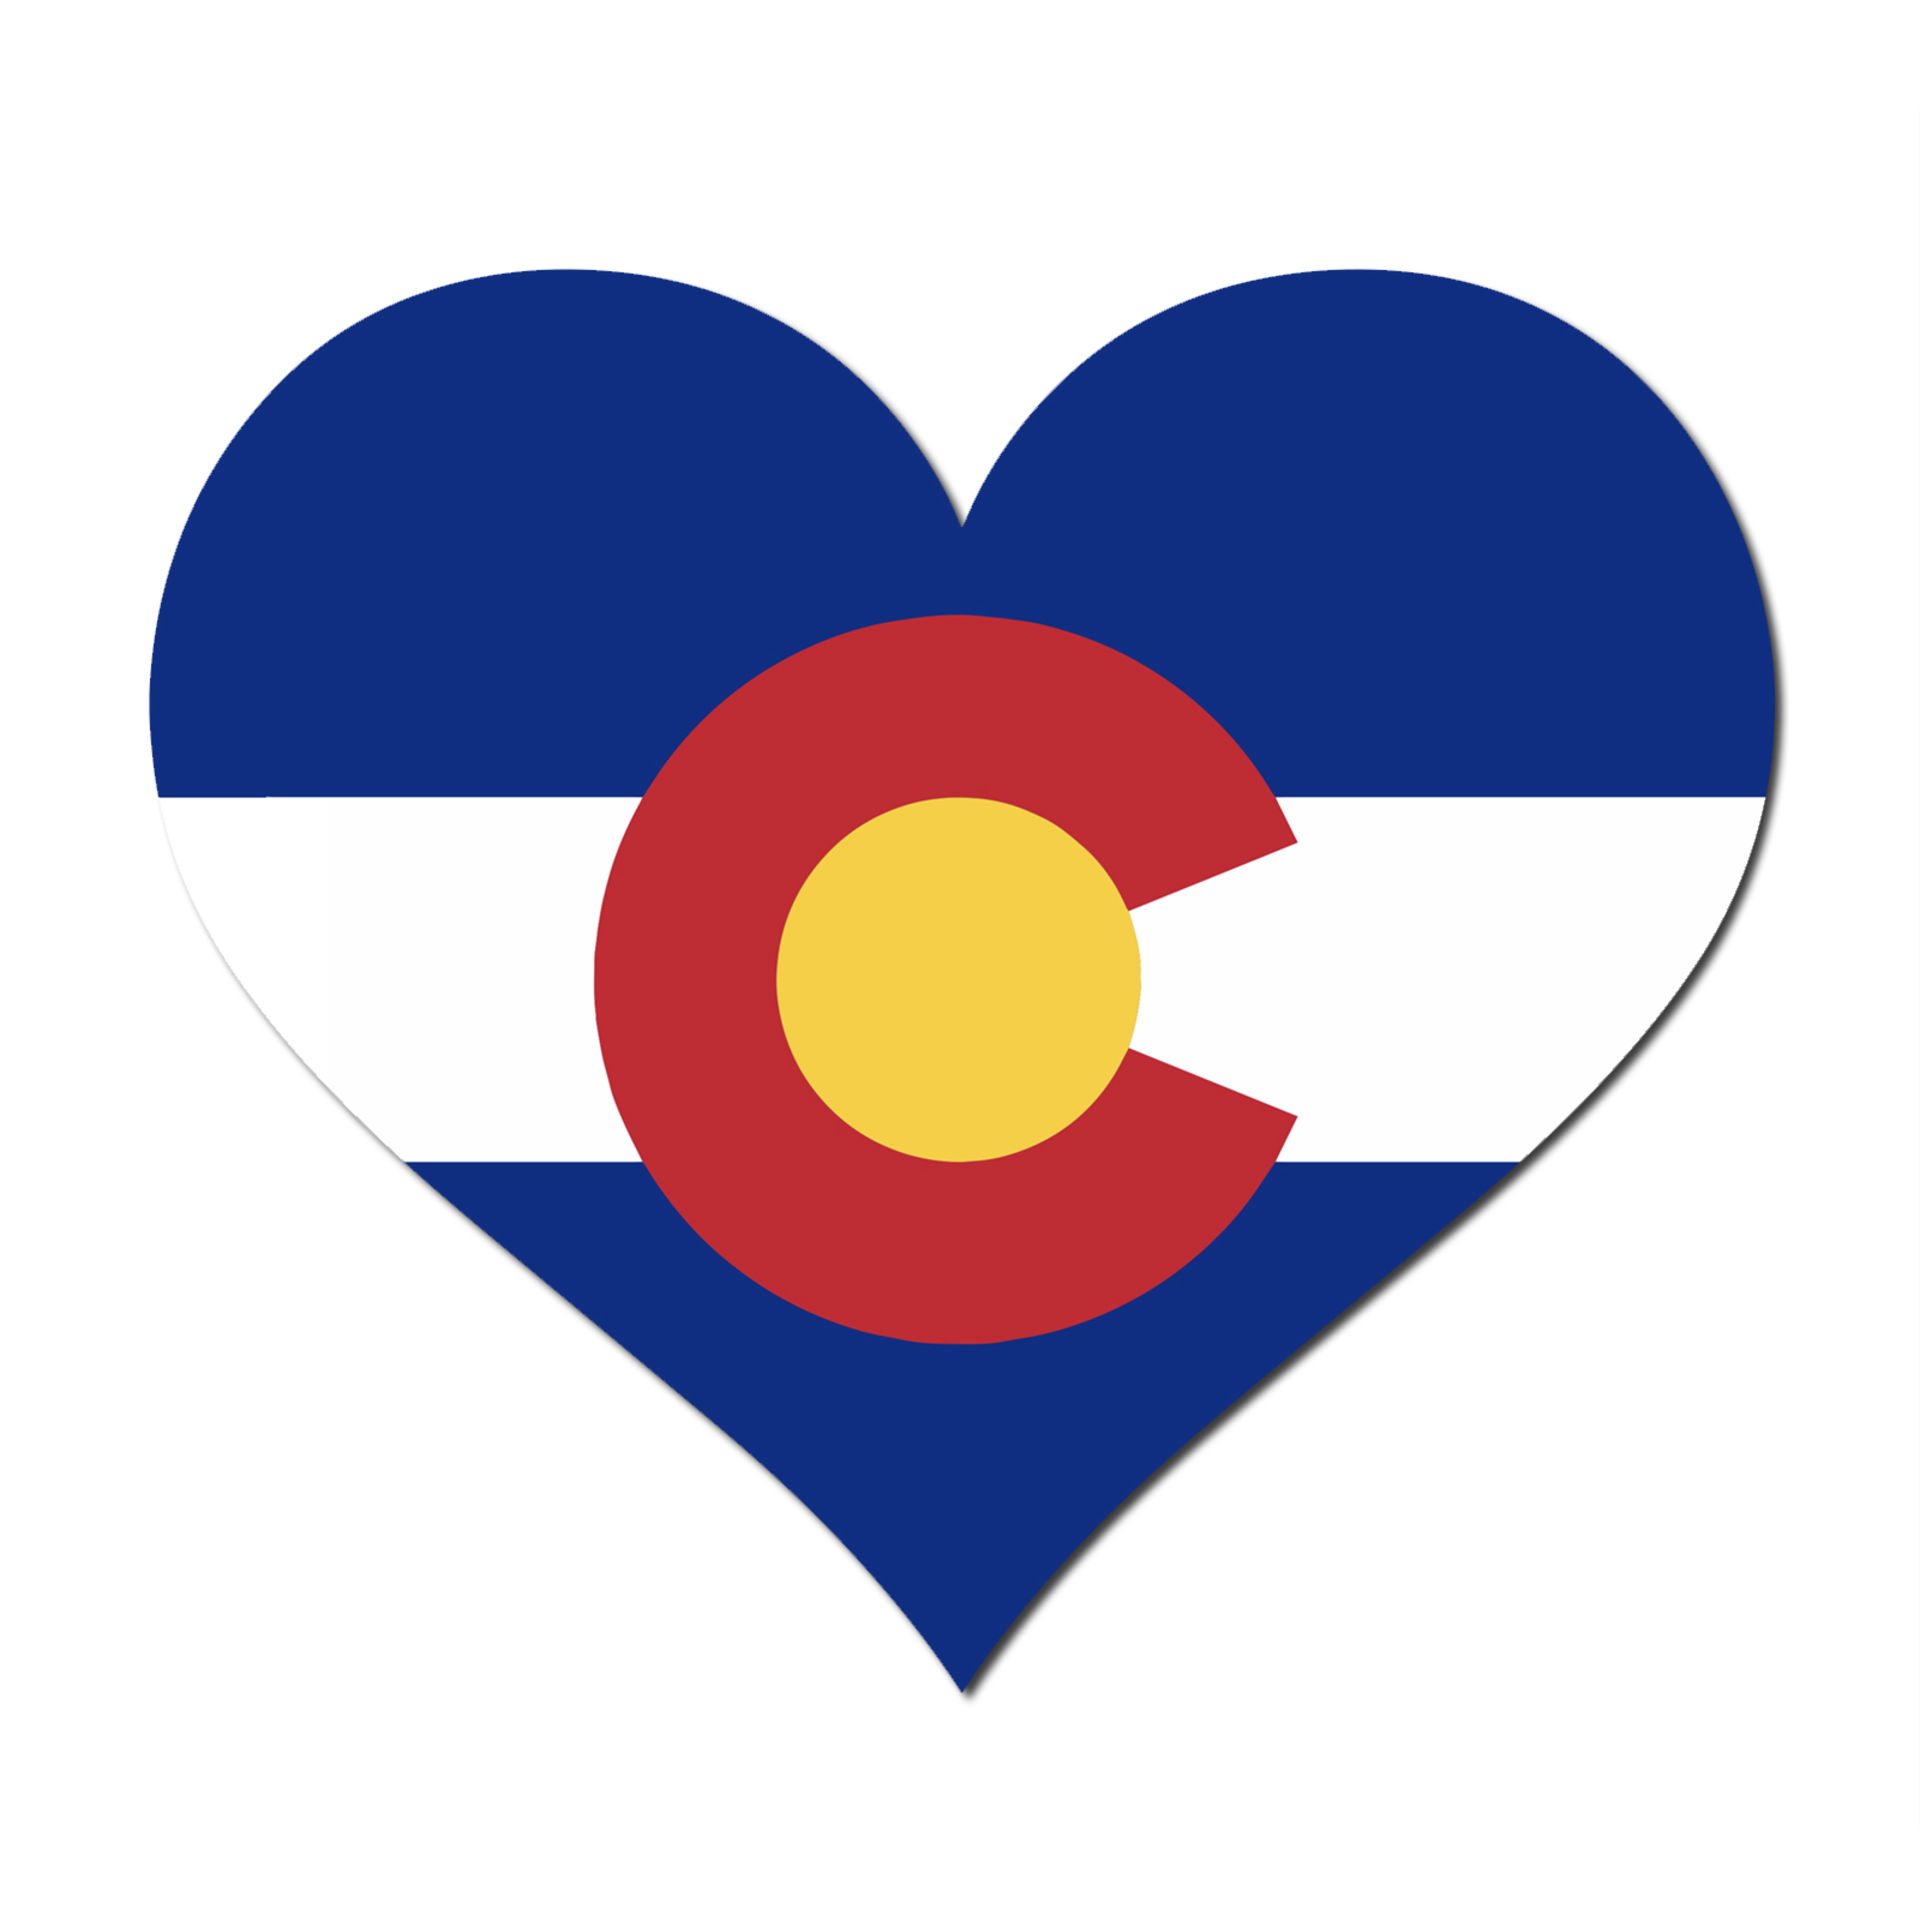 10 Things I Love About Colorado